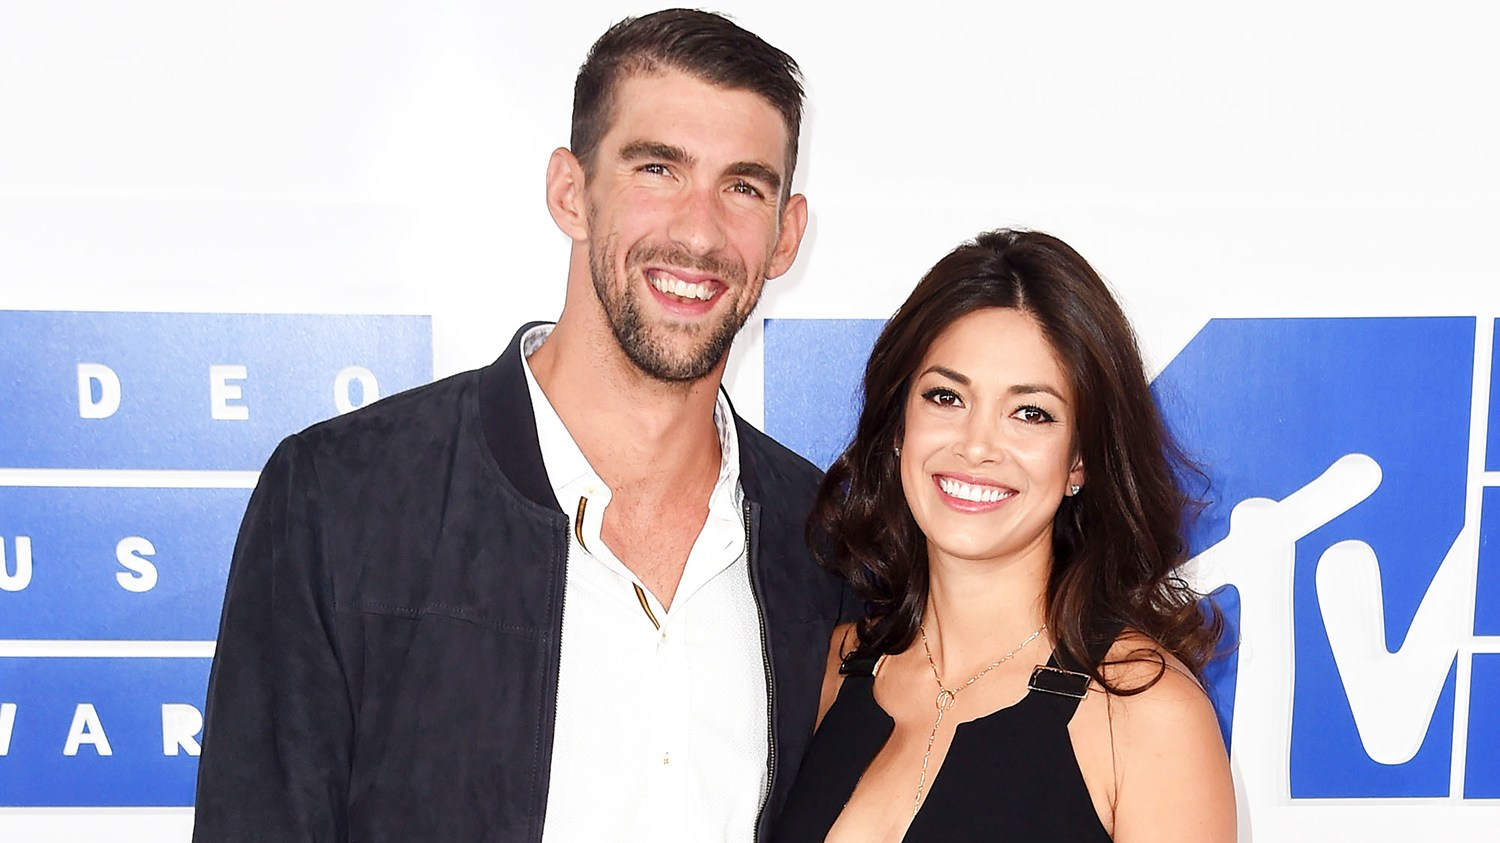 Michael Phelps and Nicole Johnson